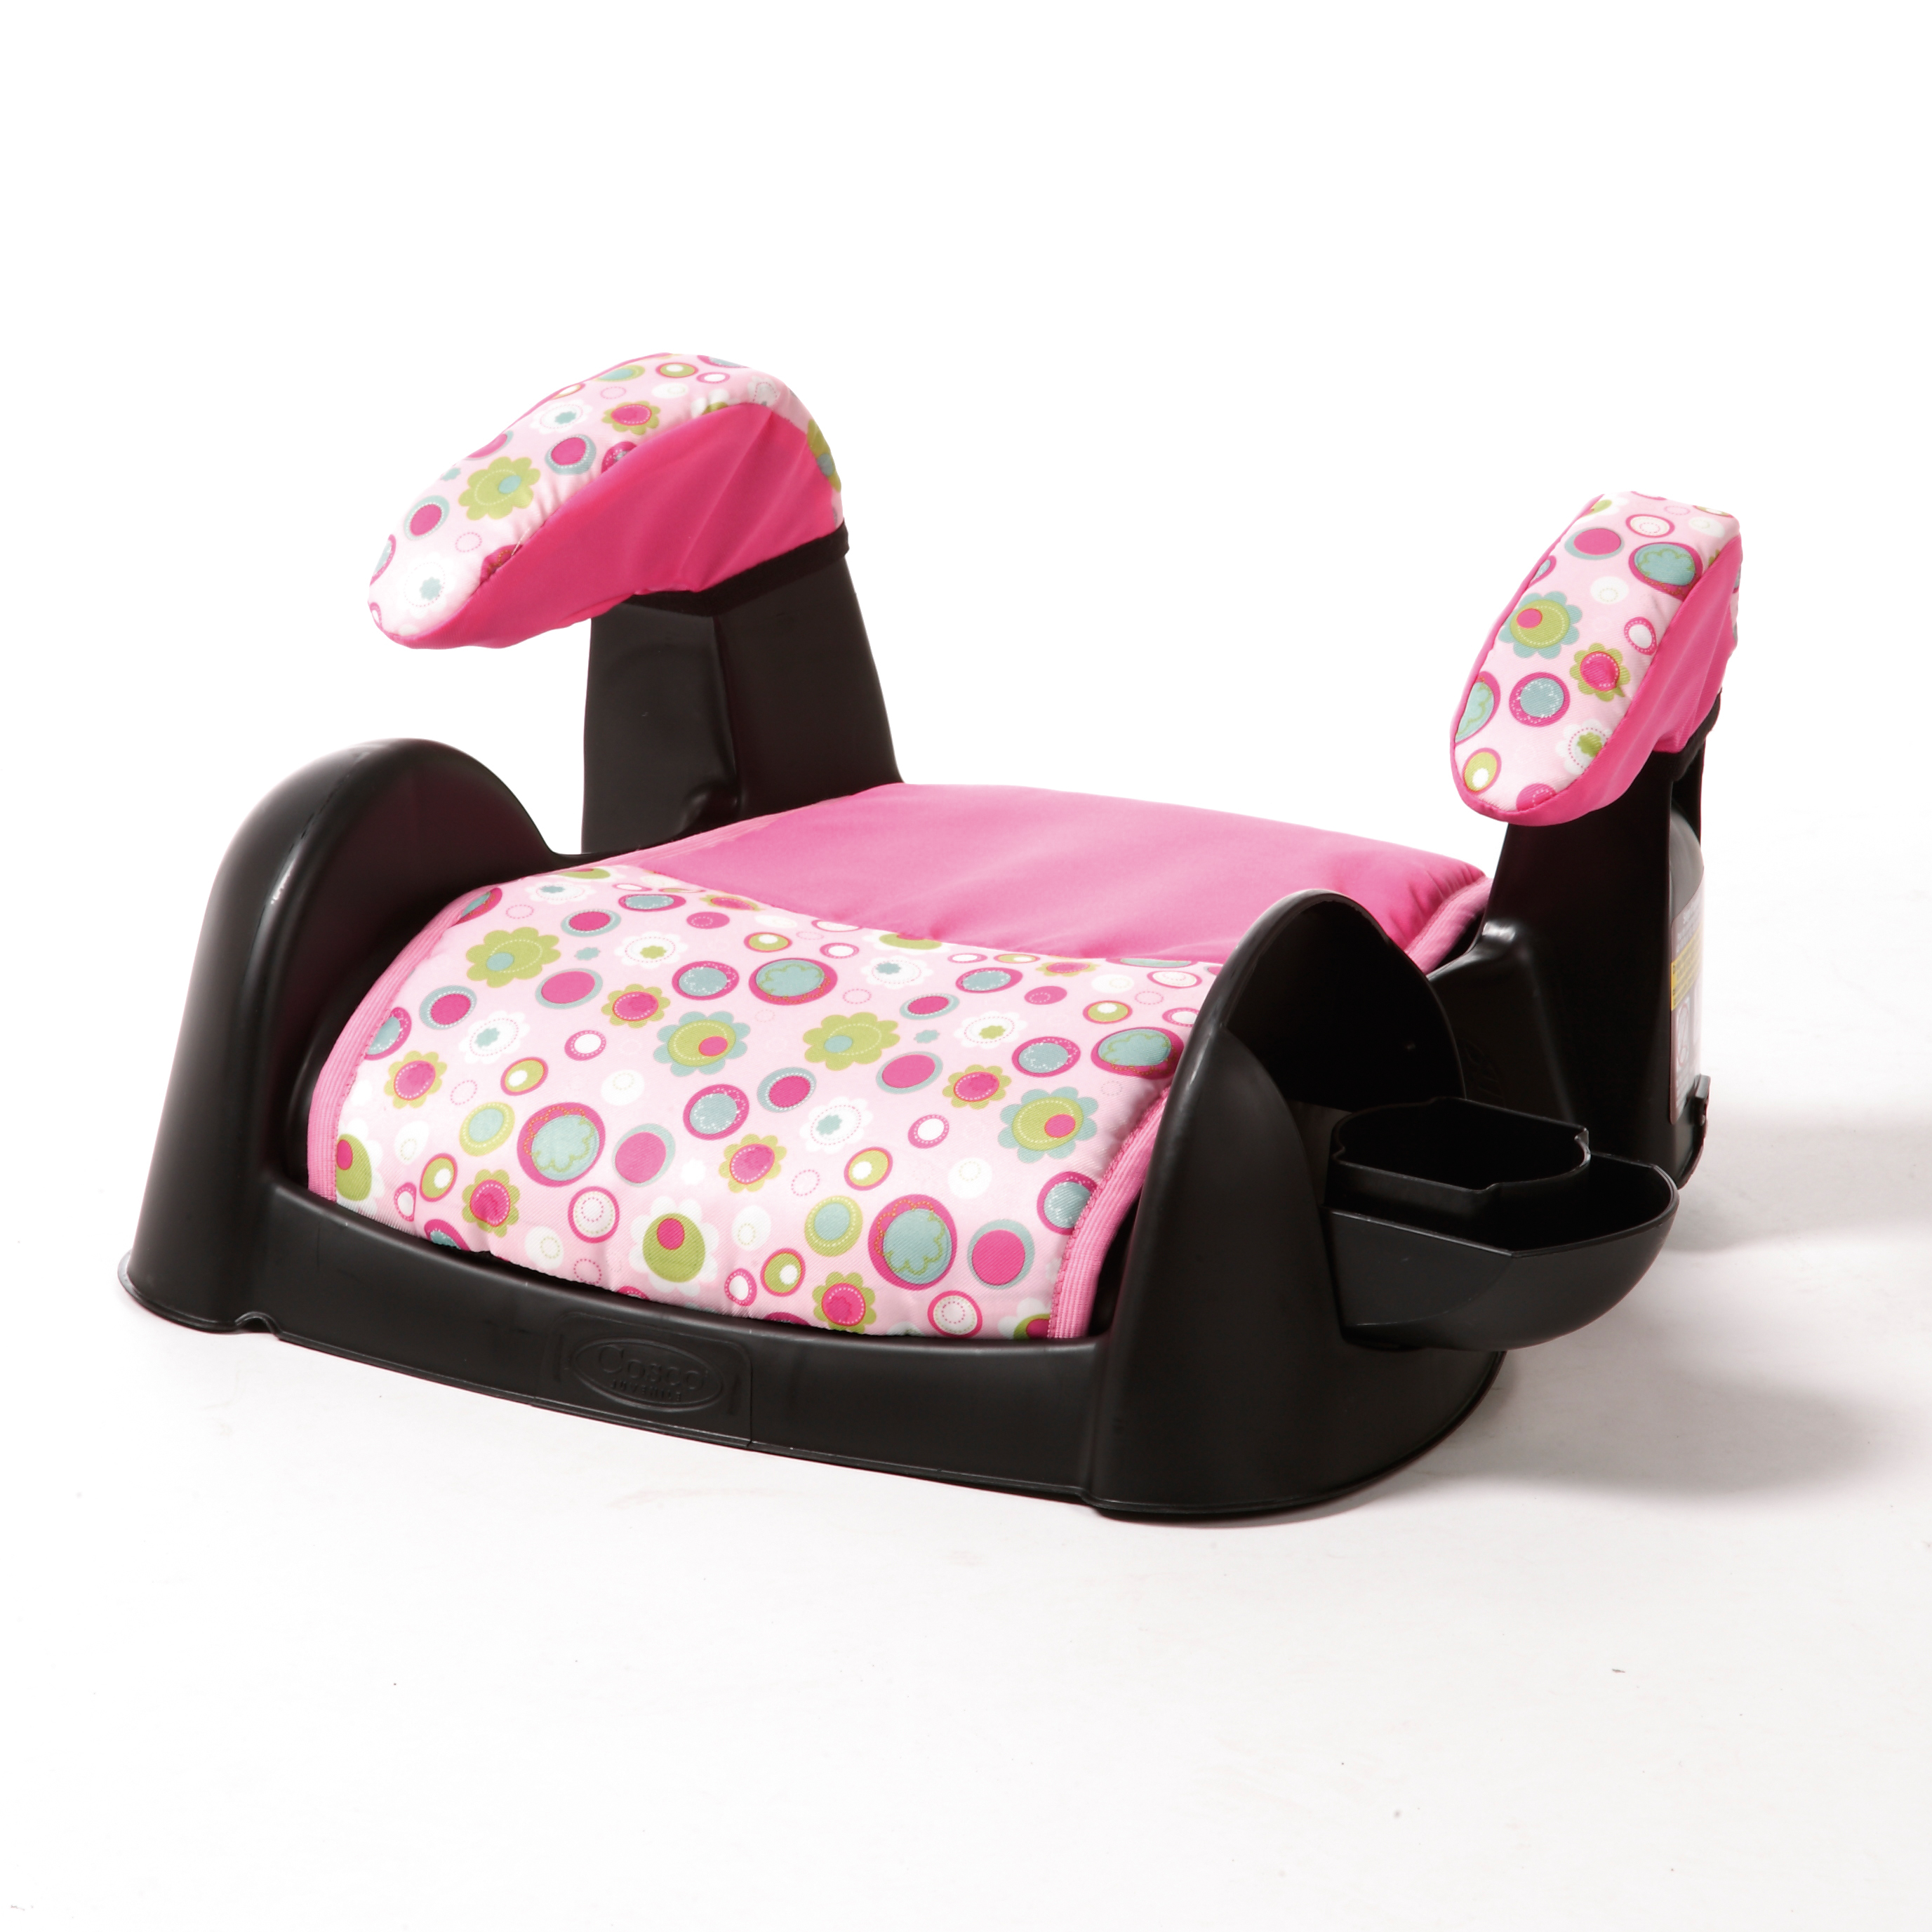 Cosco Ambassador Backless Booster Car Seat